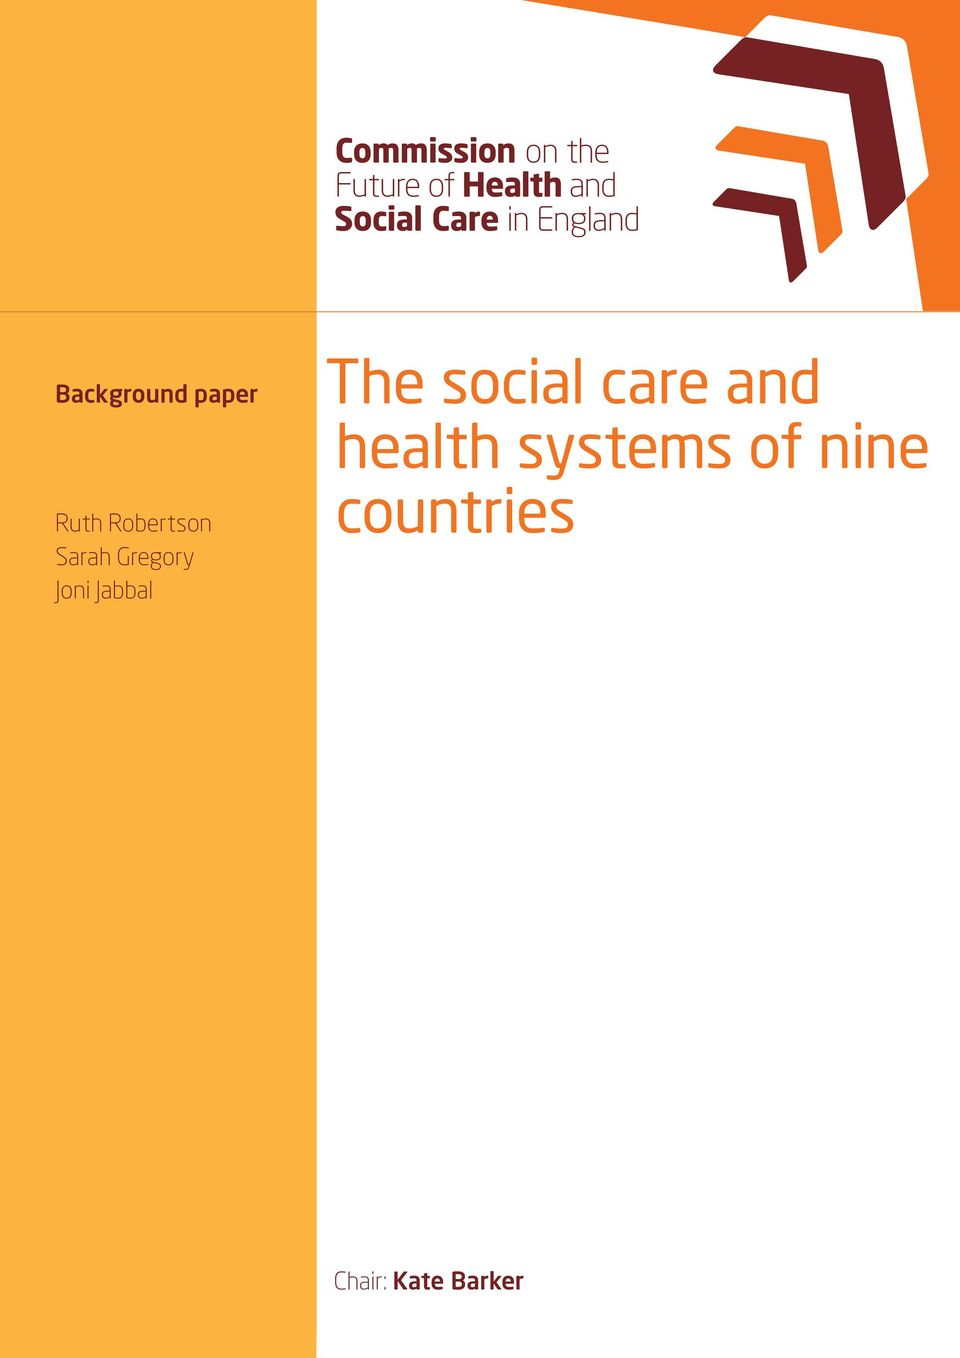 Gregory Joni Jabbal The social care and health